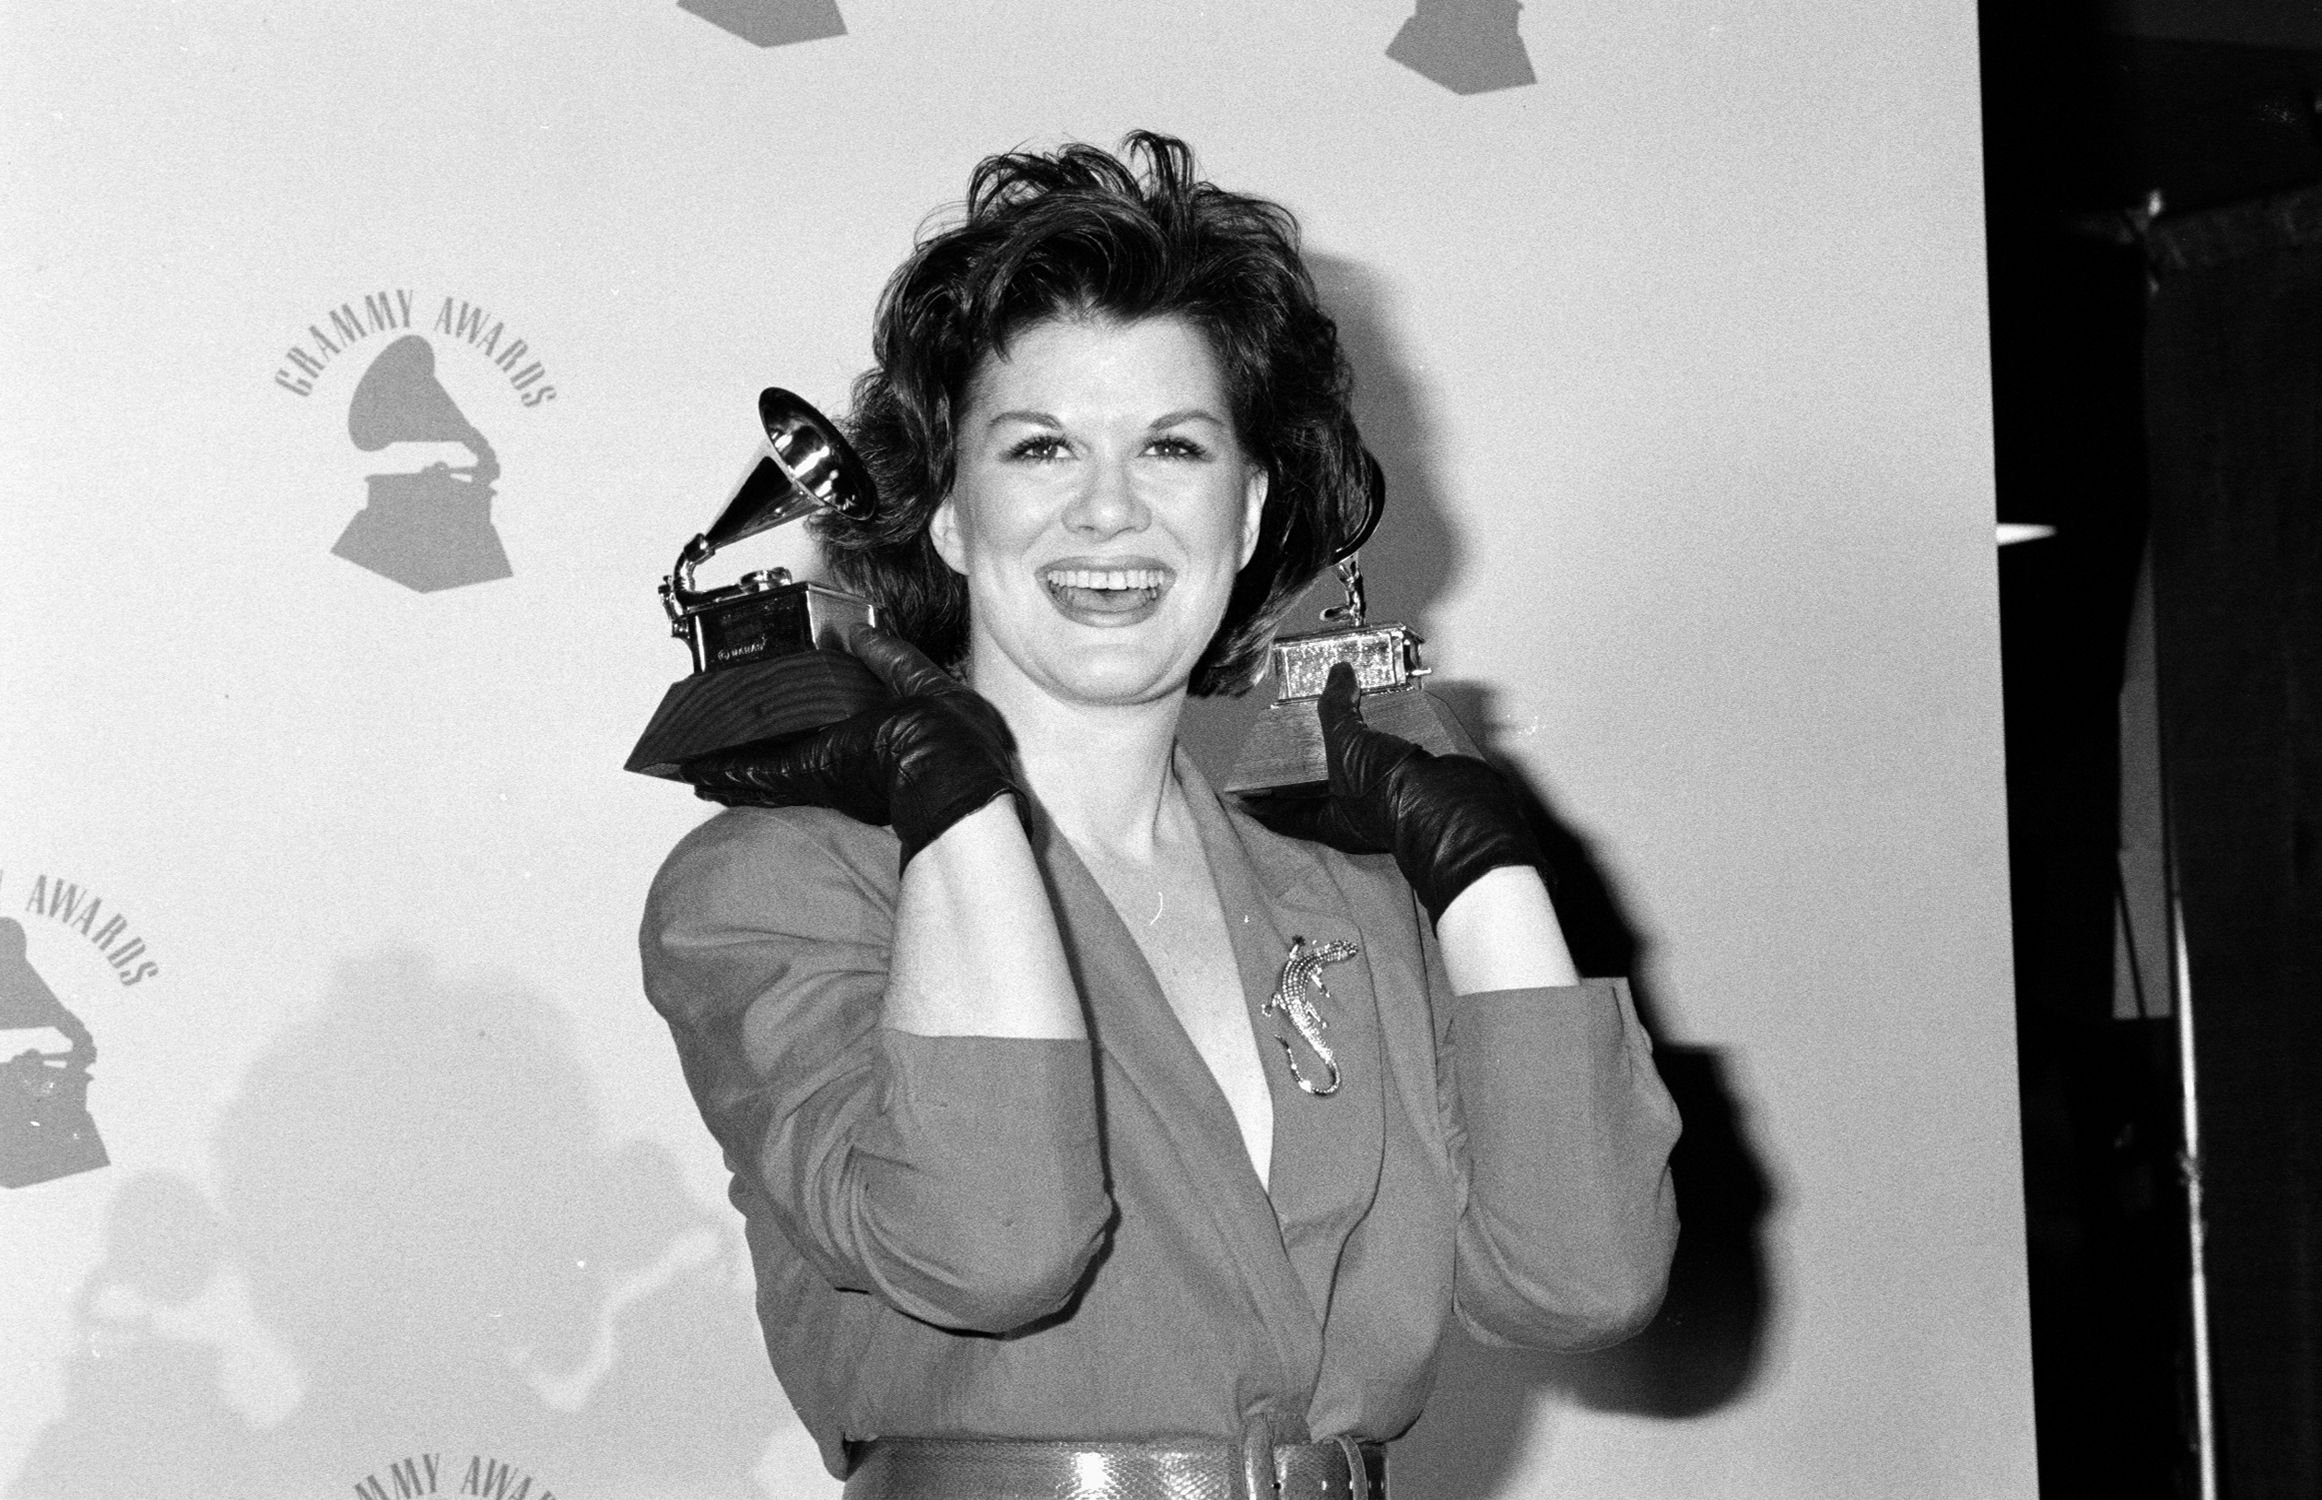 K.T. Oslin won Best Country Song and Best Female Country Vocal Performance at the 1989 Grammys   Source: Getty Images